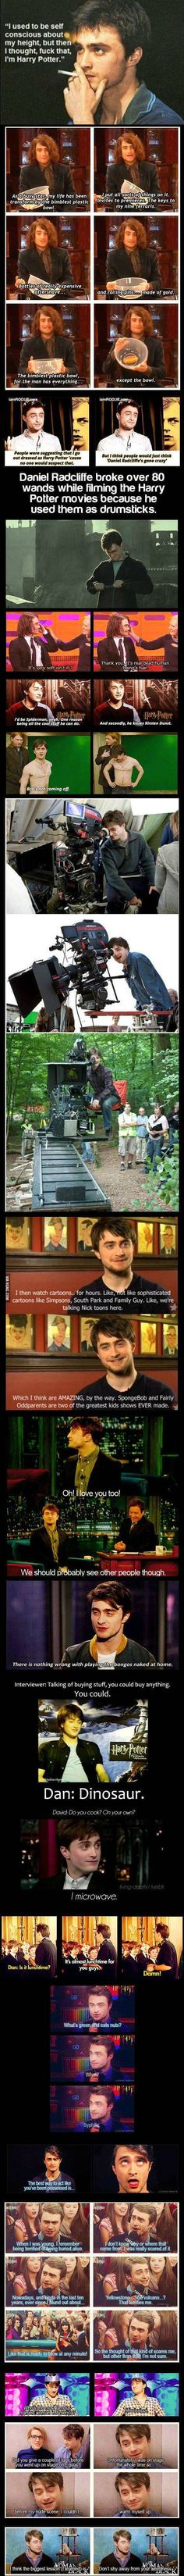 """Lmao - repinning for the joke. You'll know what I mean ehen you get to it!!! Lol - """"Daniel Radcliffe is like the male version of Jennifer Lawrence."""""""